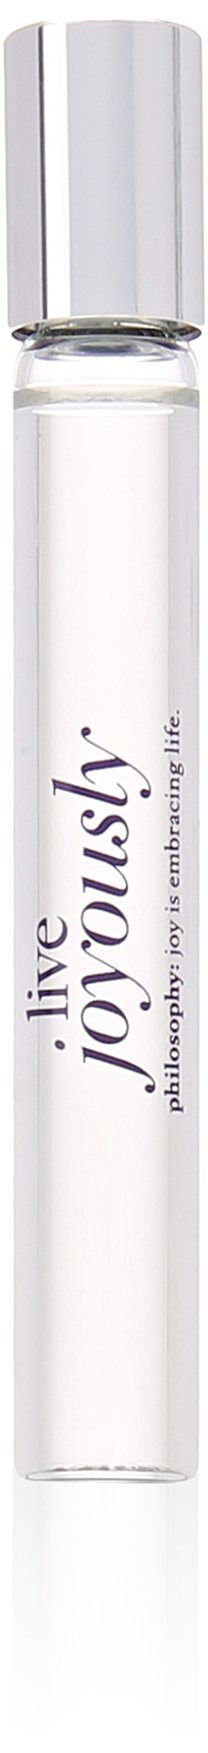 Philosophy Live Joyously Fragrance Eau de Parfum Roll-On, 0.33 Ounce